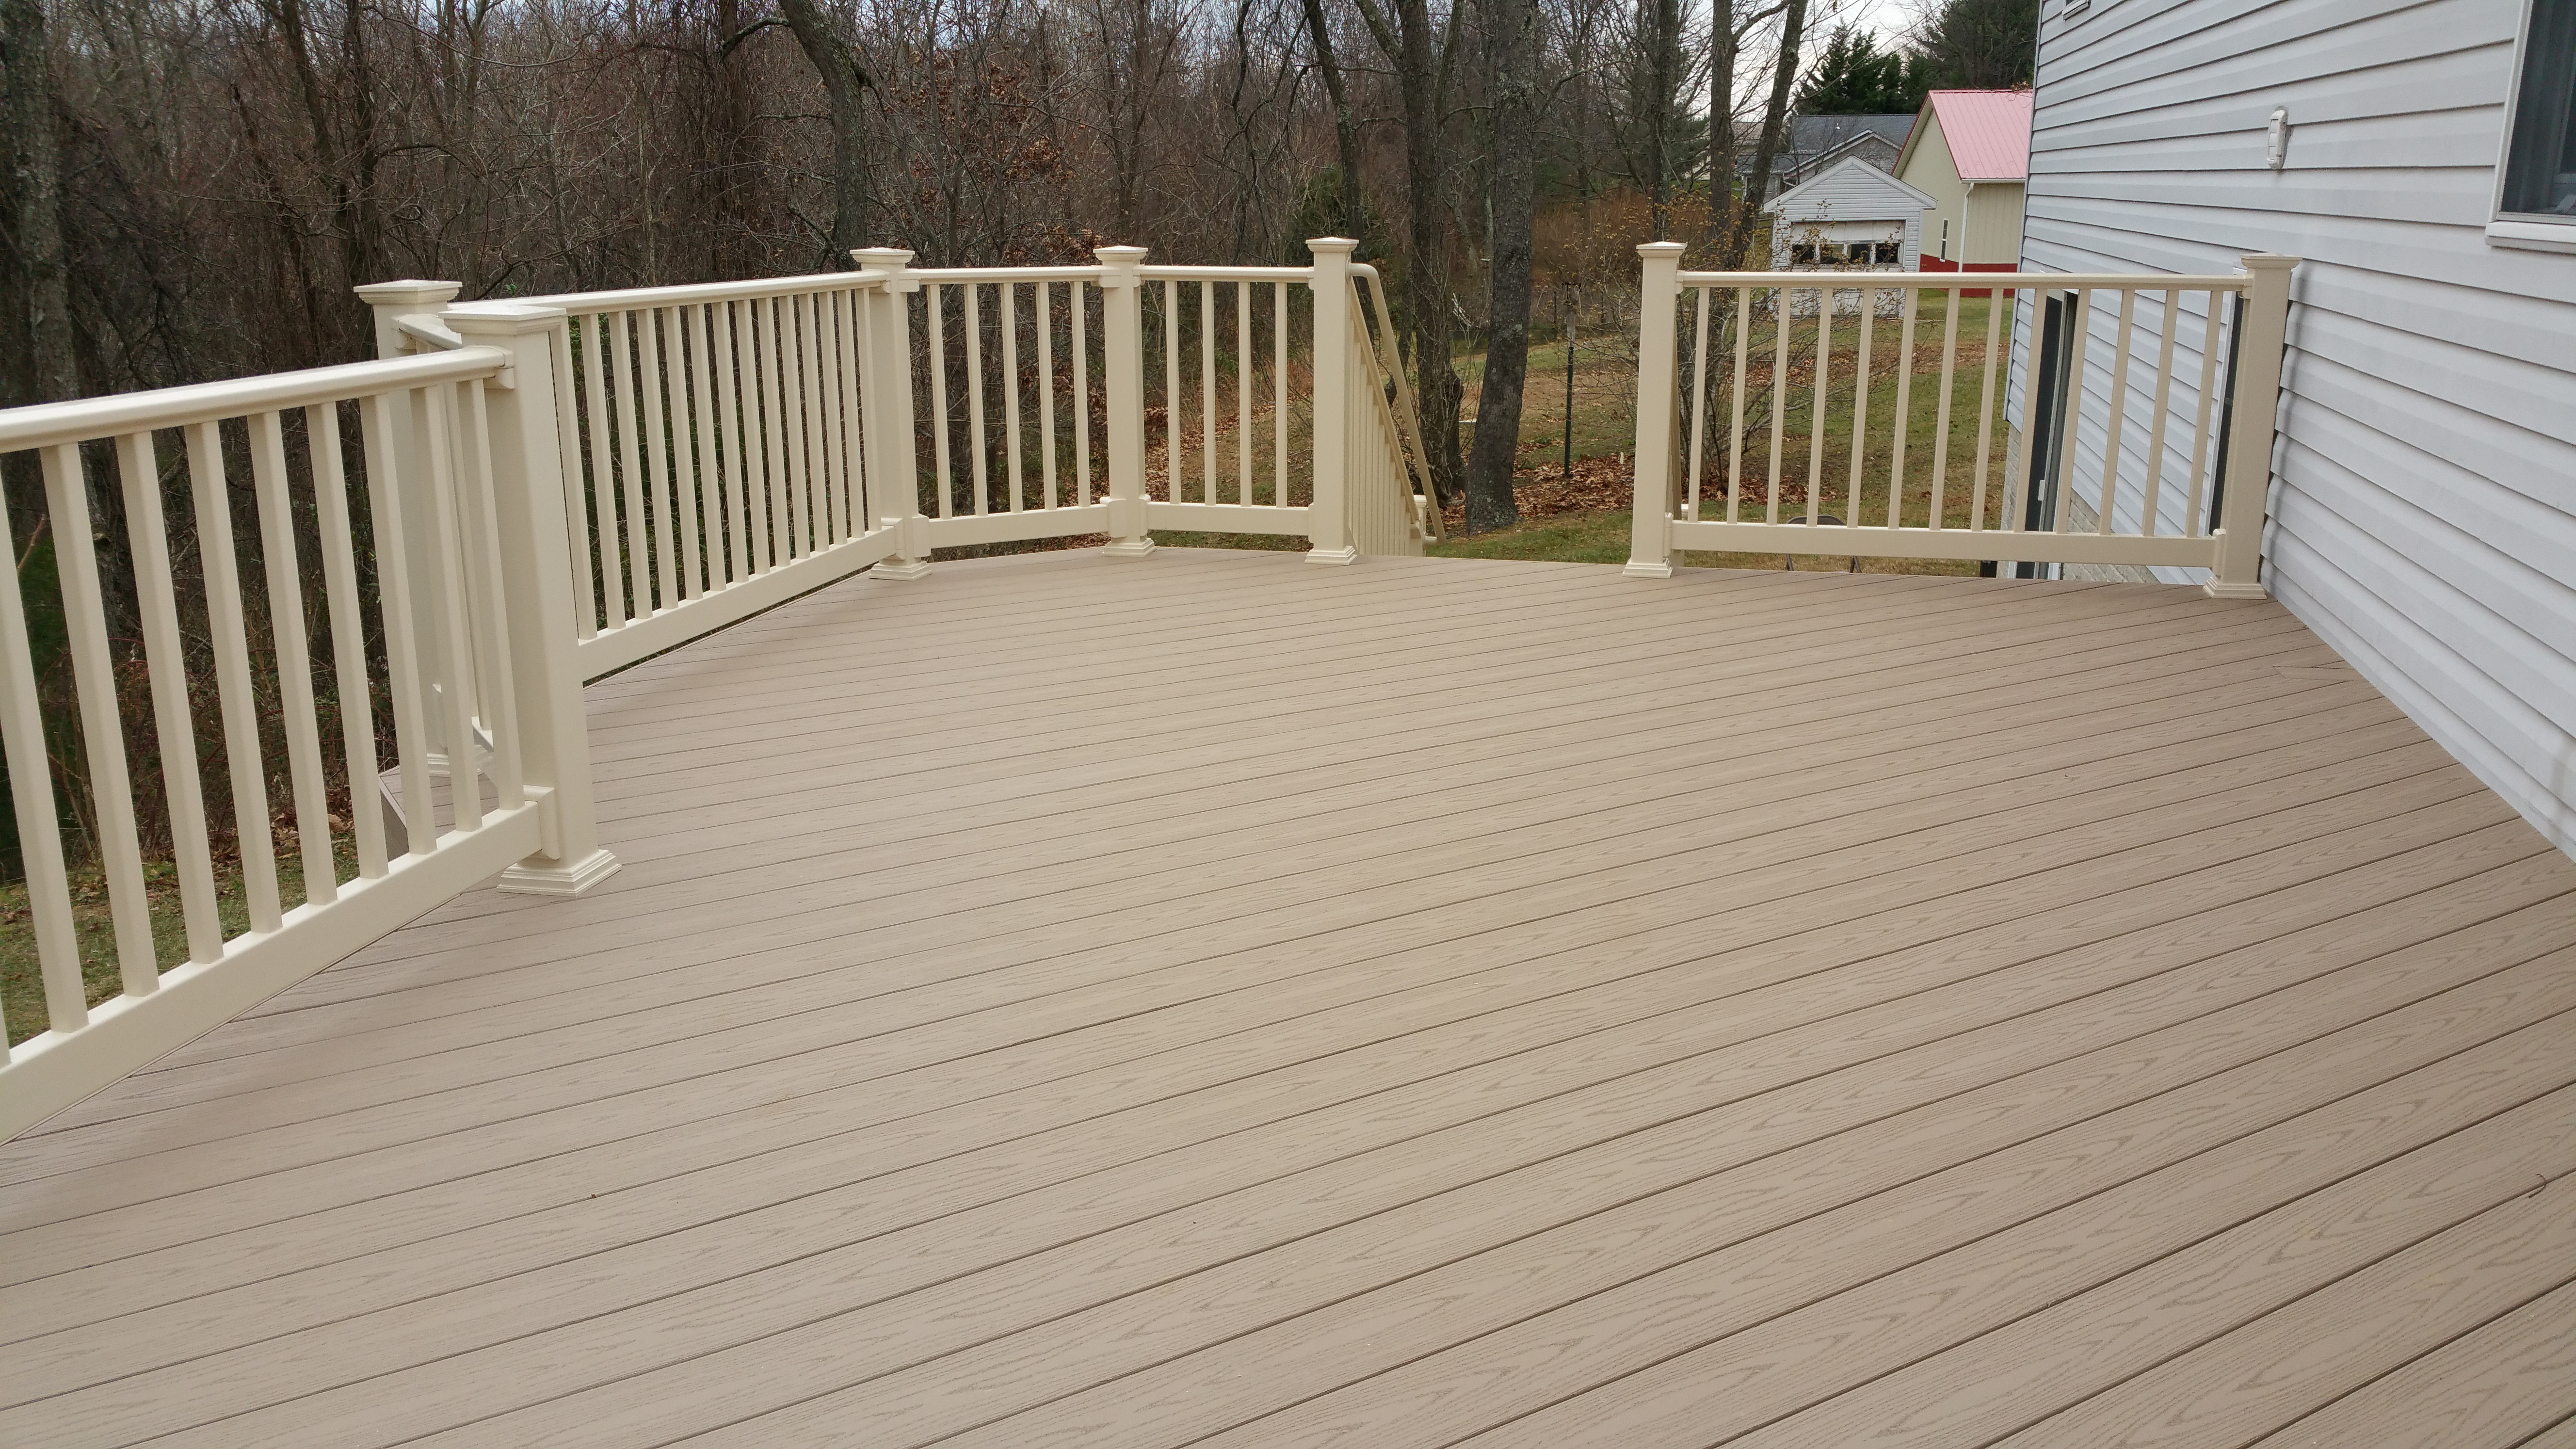 Deck Builders in Westminister, MD